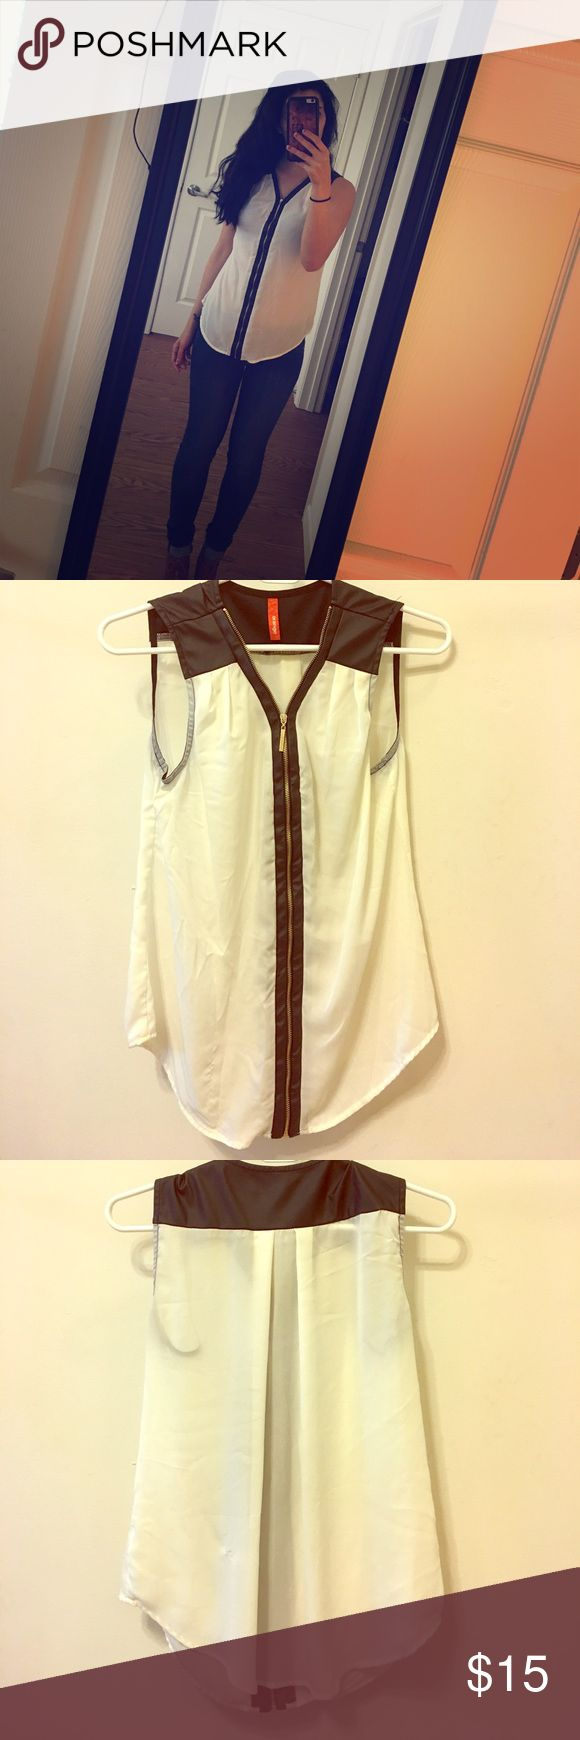 Black and White Zip Up Blouse Sheer Zip Up Blouse w/ Leather Tops Blouses